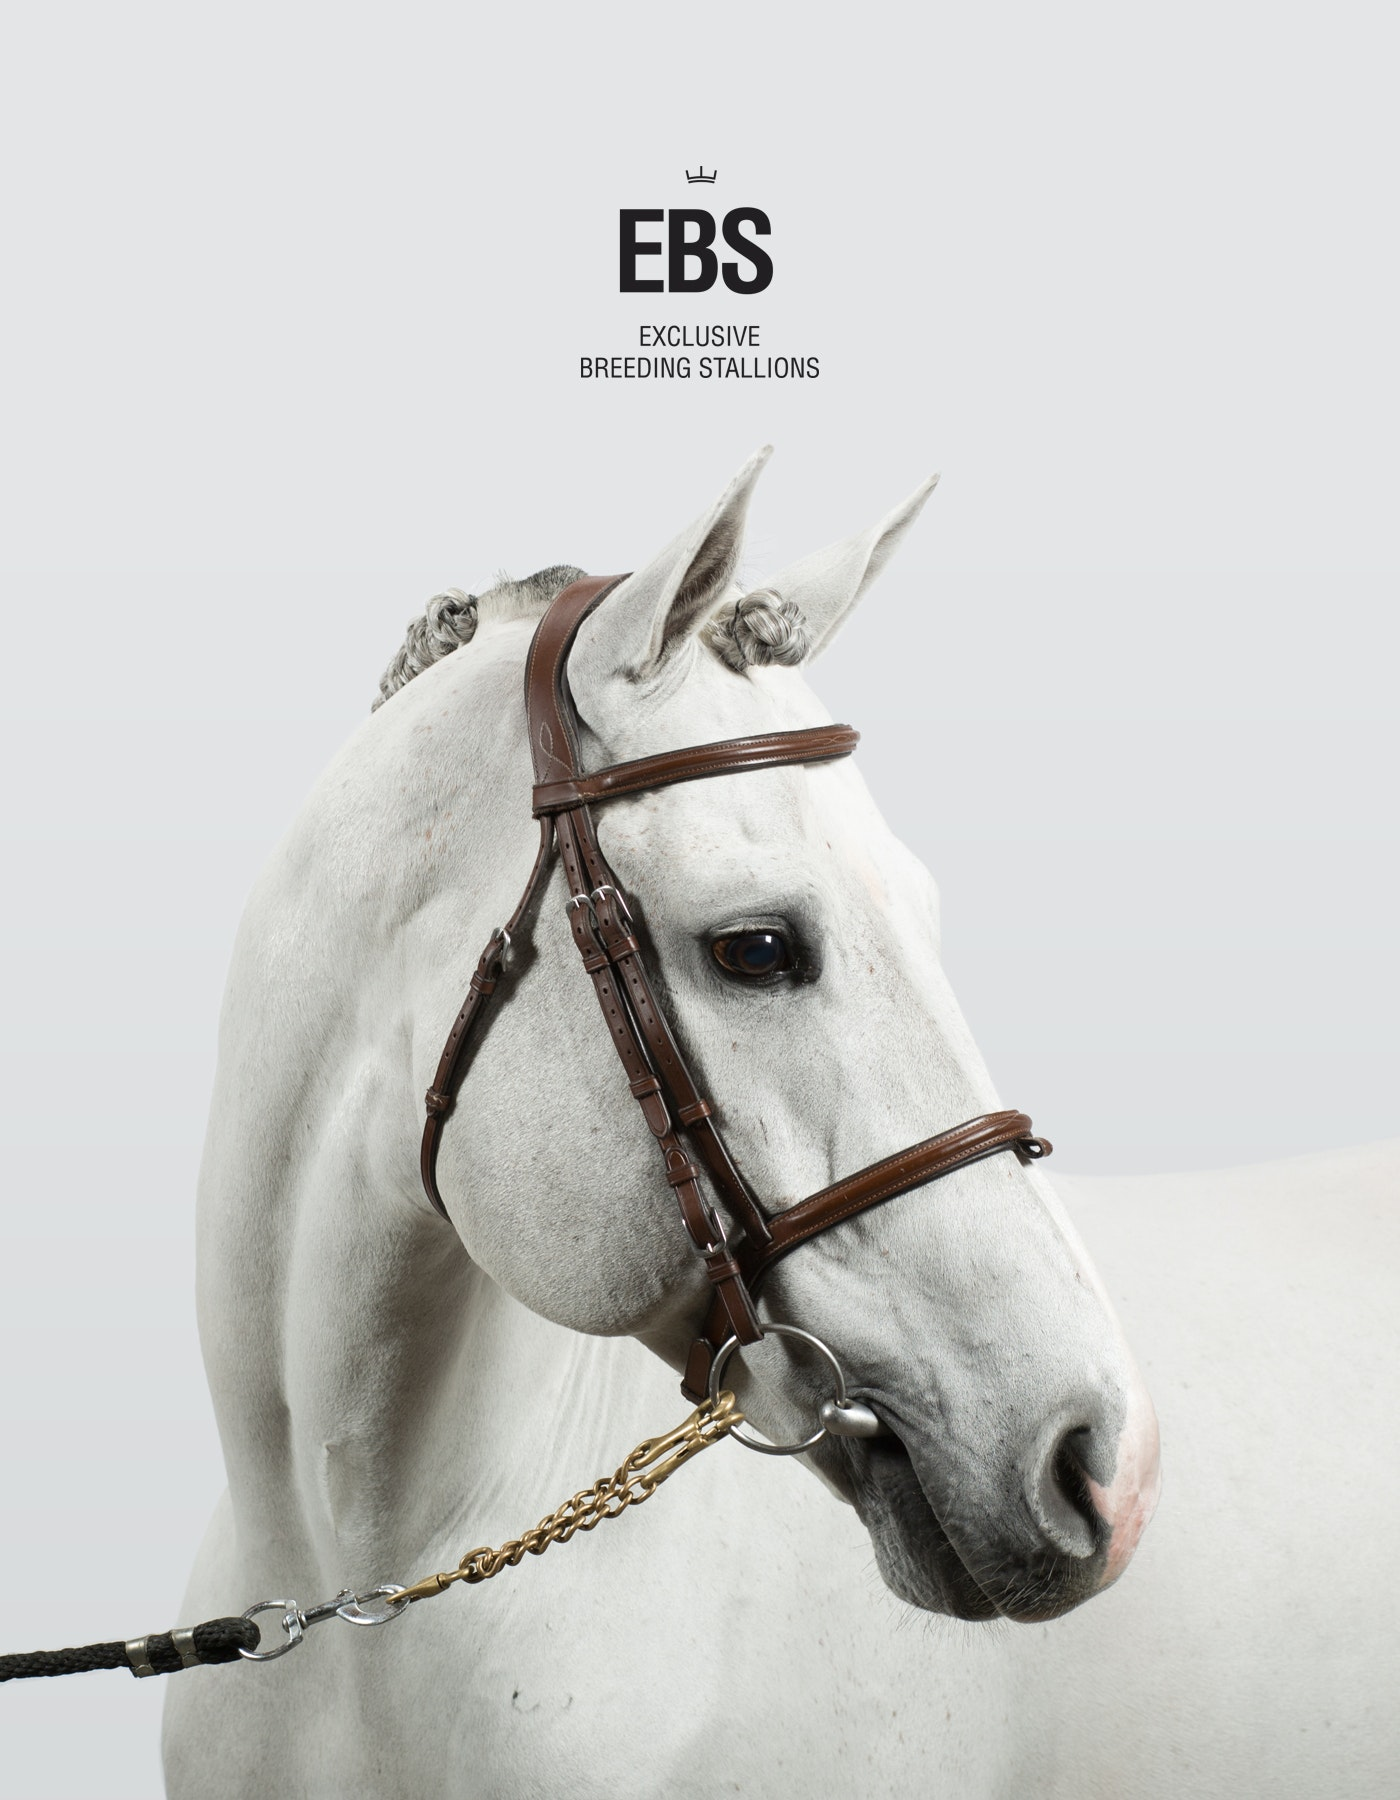 Exclusive Breeding Stallions